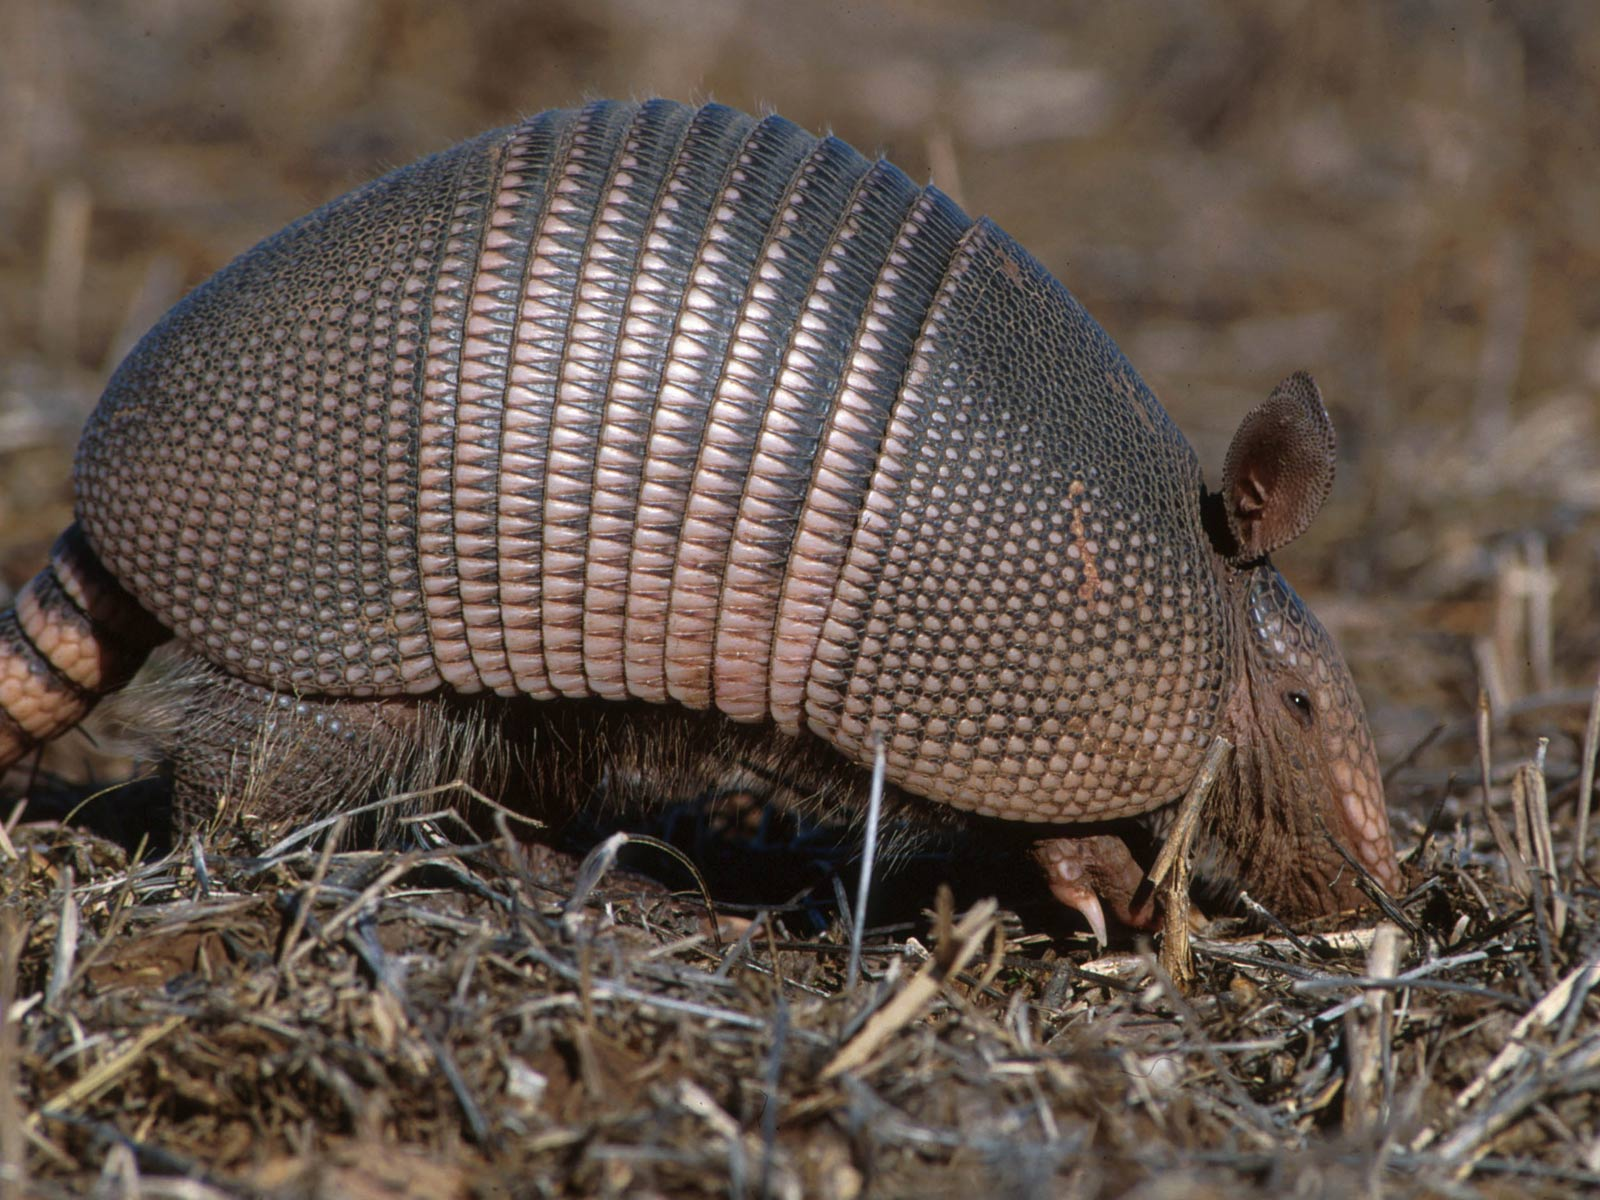 what animal has a carapace